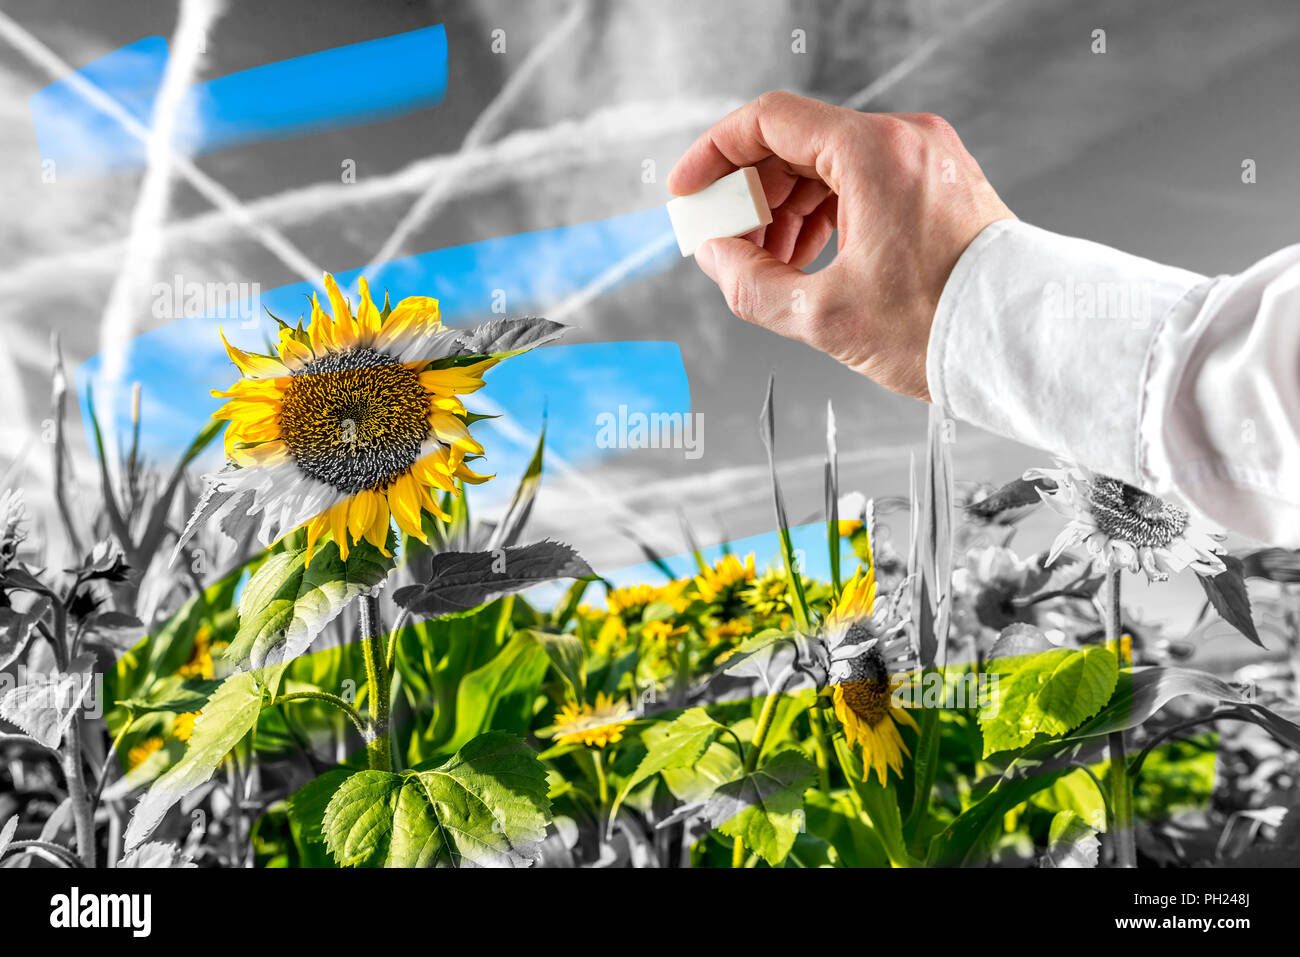 Man conserving nature erasing pollution in the atmosphere over an agricultural field of sunflowers to expose the vibrant colours of nature under a gre - Stock Image